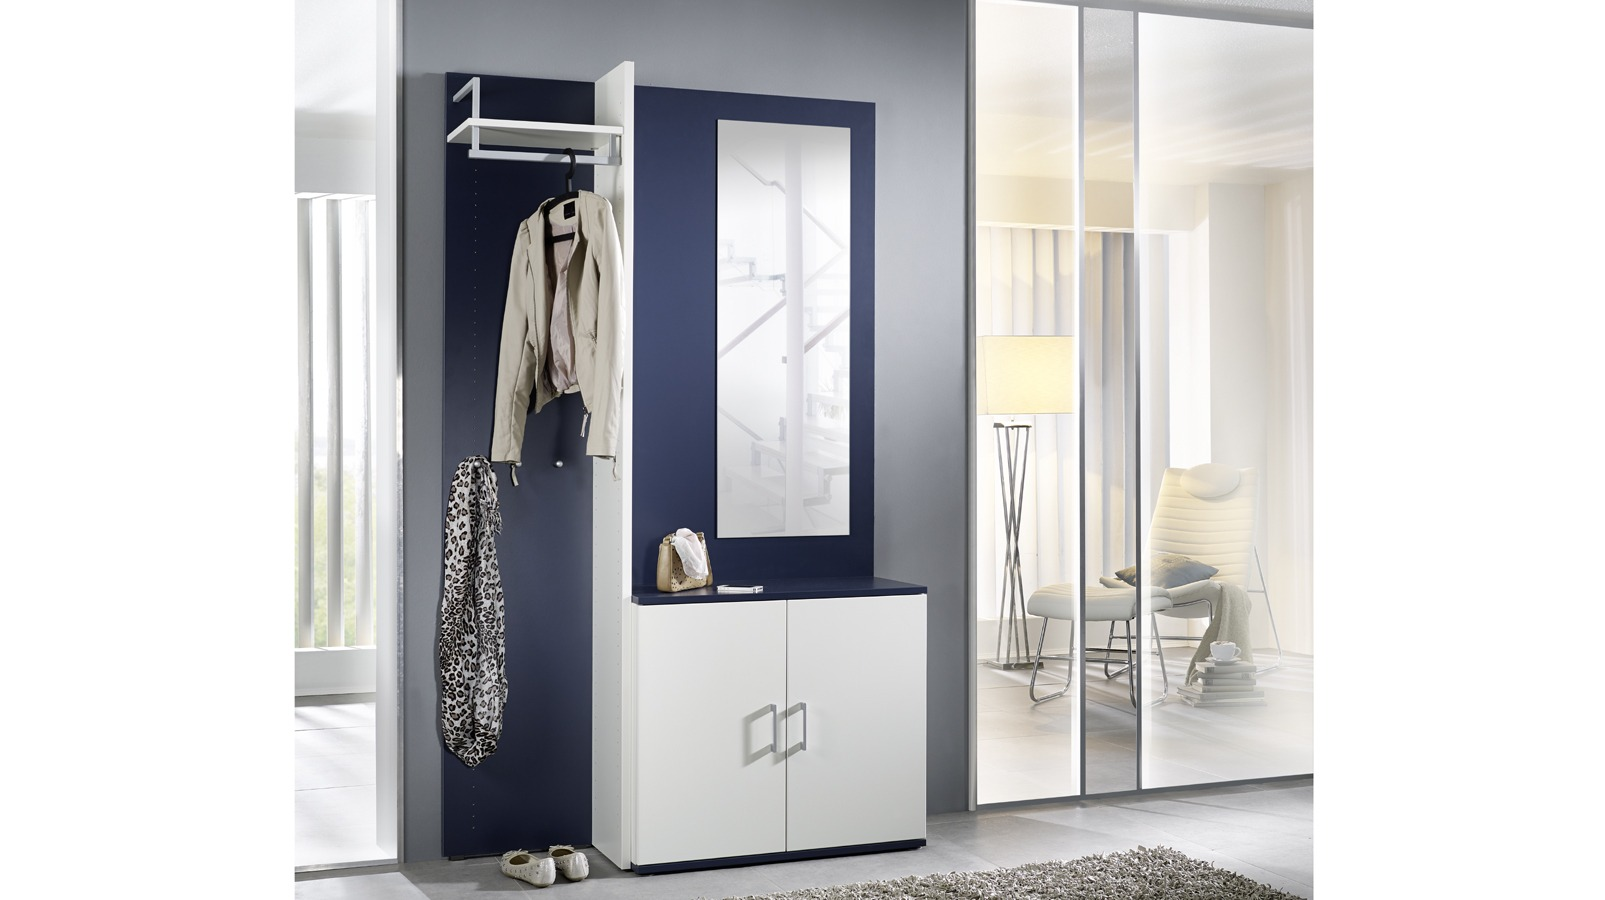 garderobe colorfun ulrich wohnen. Black Bedroom Furniture Sets. Home Design Ideas